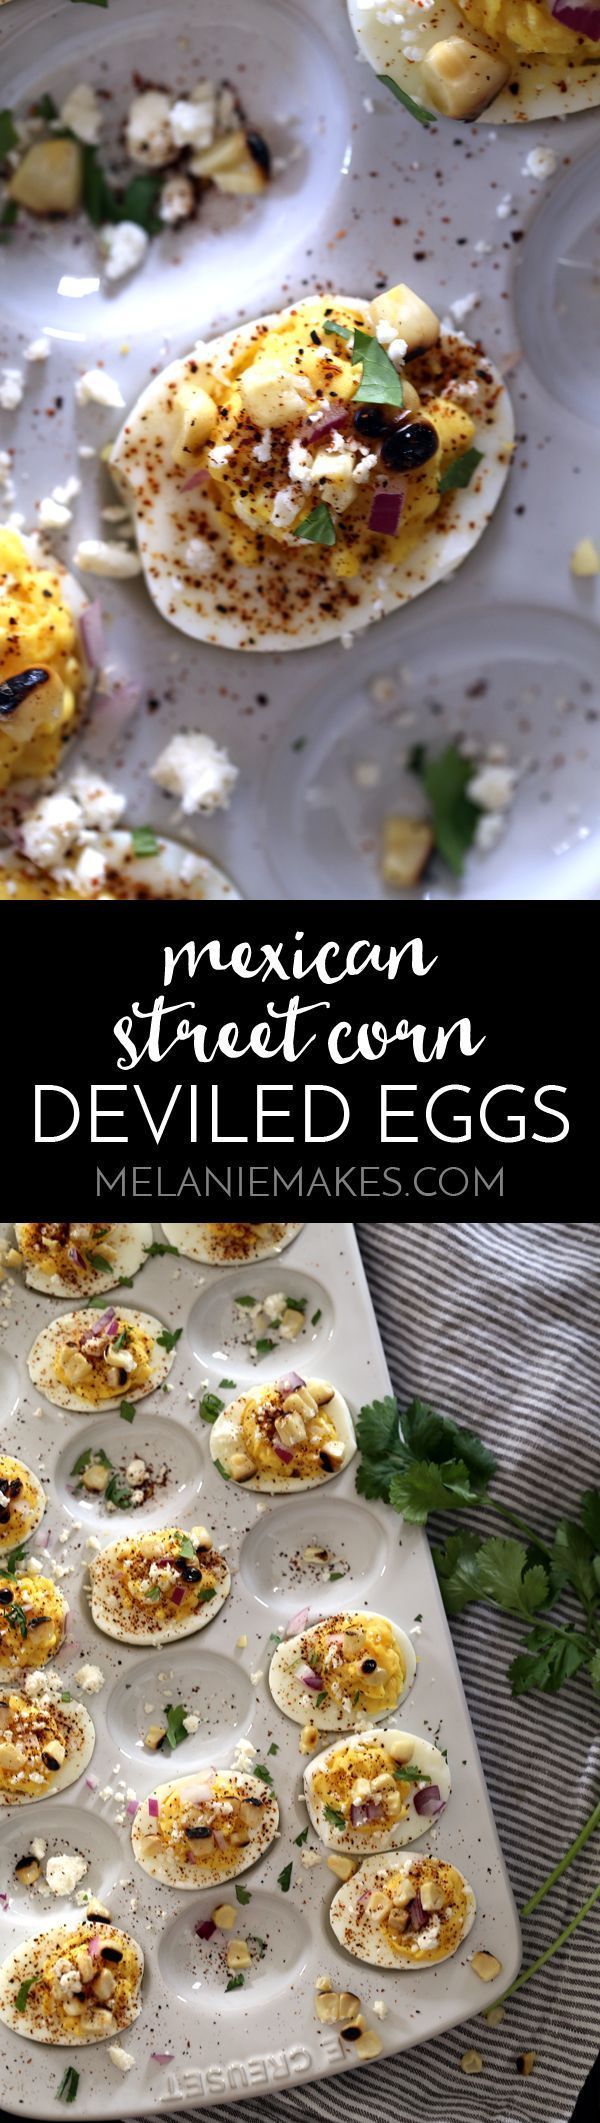 These Mexican Street Corn Deviled Eggs are guaranteed to be the talk of your next gathering! Traditional deviled eggs are garnished with feta cheese, grilled corn, red onion, chili powder and cilantro to create one amazing bite size appetizer.